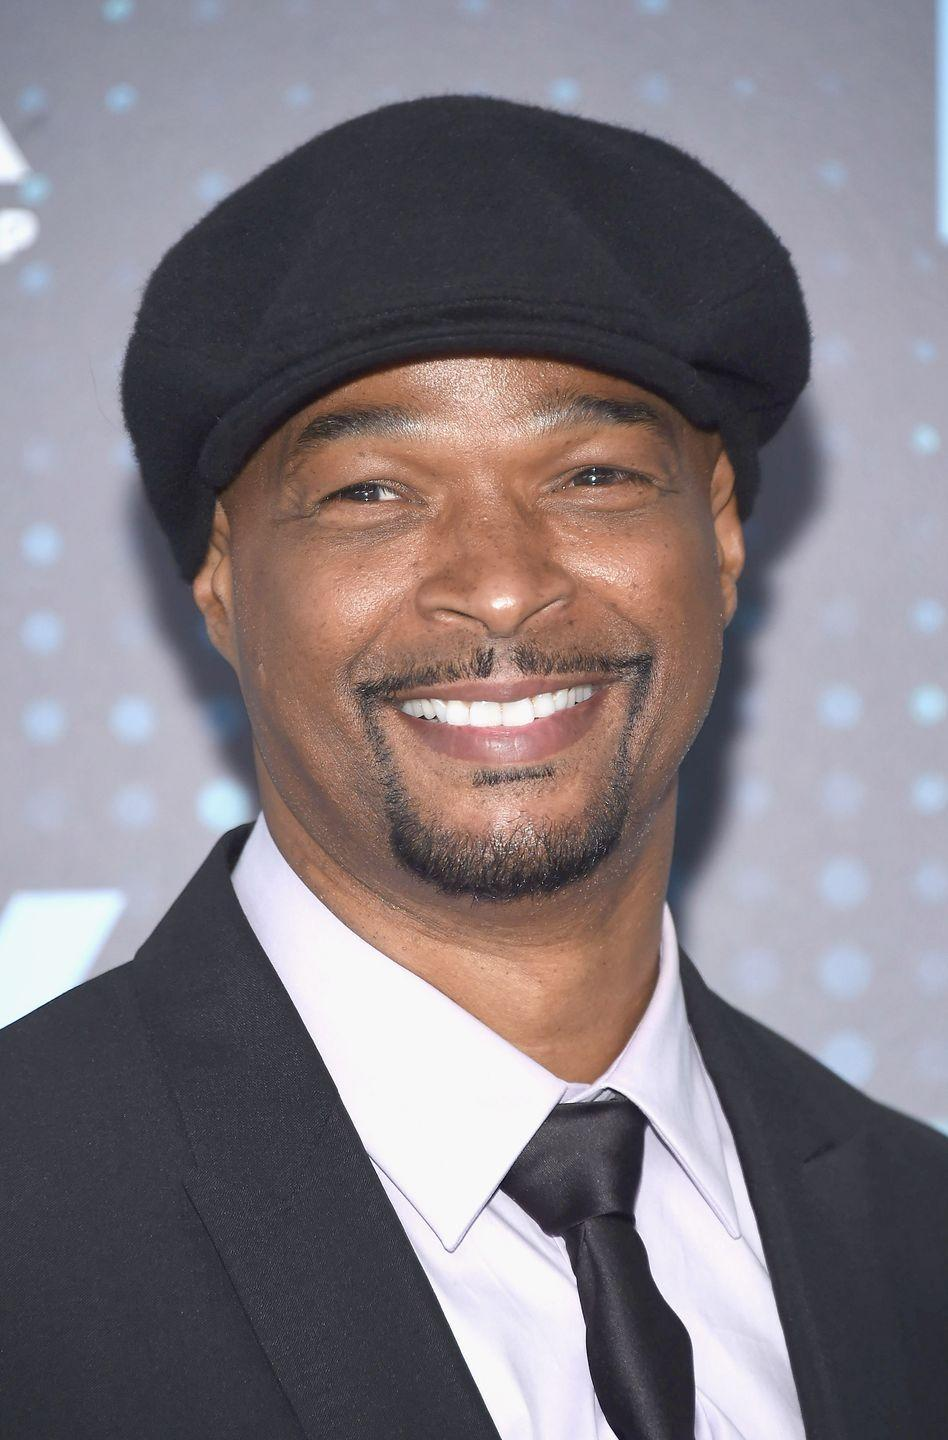 "<p>Wayans <a href=""https://www.bet.com/celebrities/photos/2015/01/successful-celebs-who-dropped-out-of-high-school.html#!012515-celebs-successful-celebs-who-dropped-out-of-high-school-Damon-Wayans"" rel=""nofollow noopener"" target=""_blank"" data-ylk=""slk:dropped out"" class=""link rapid-noclick-resp"">dropped out</a> as a freshman to follow his older brother to Los Angeles. He later became the star of his brother's hit sketch-comedy show, In <em>Living Color</em>.</p>"